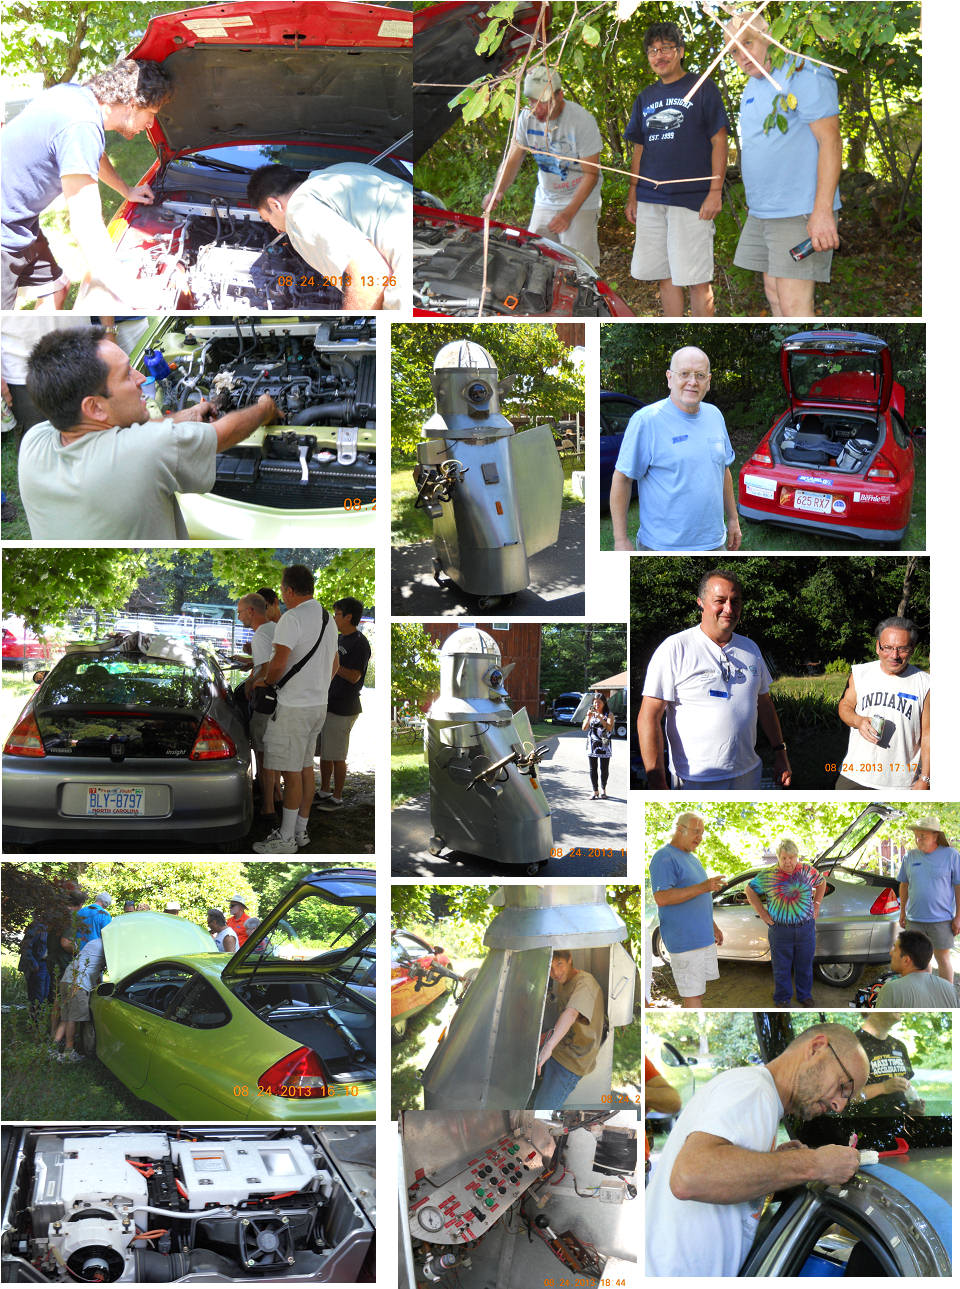 Dave Robie photos more hands on car work, Sparkie greets the people